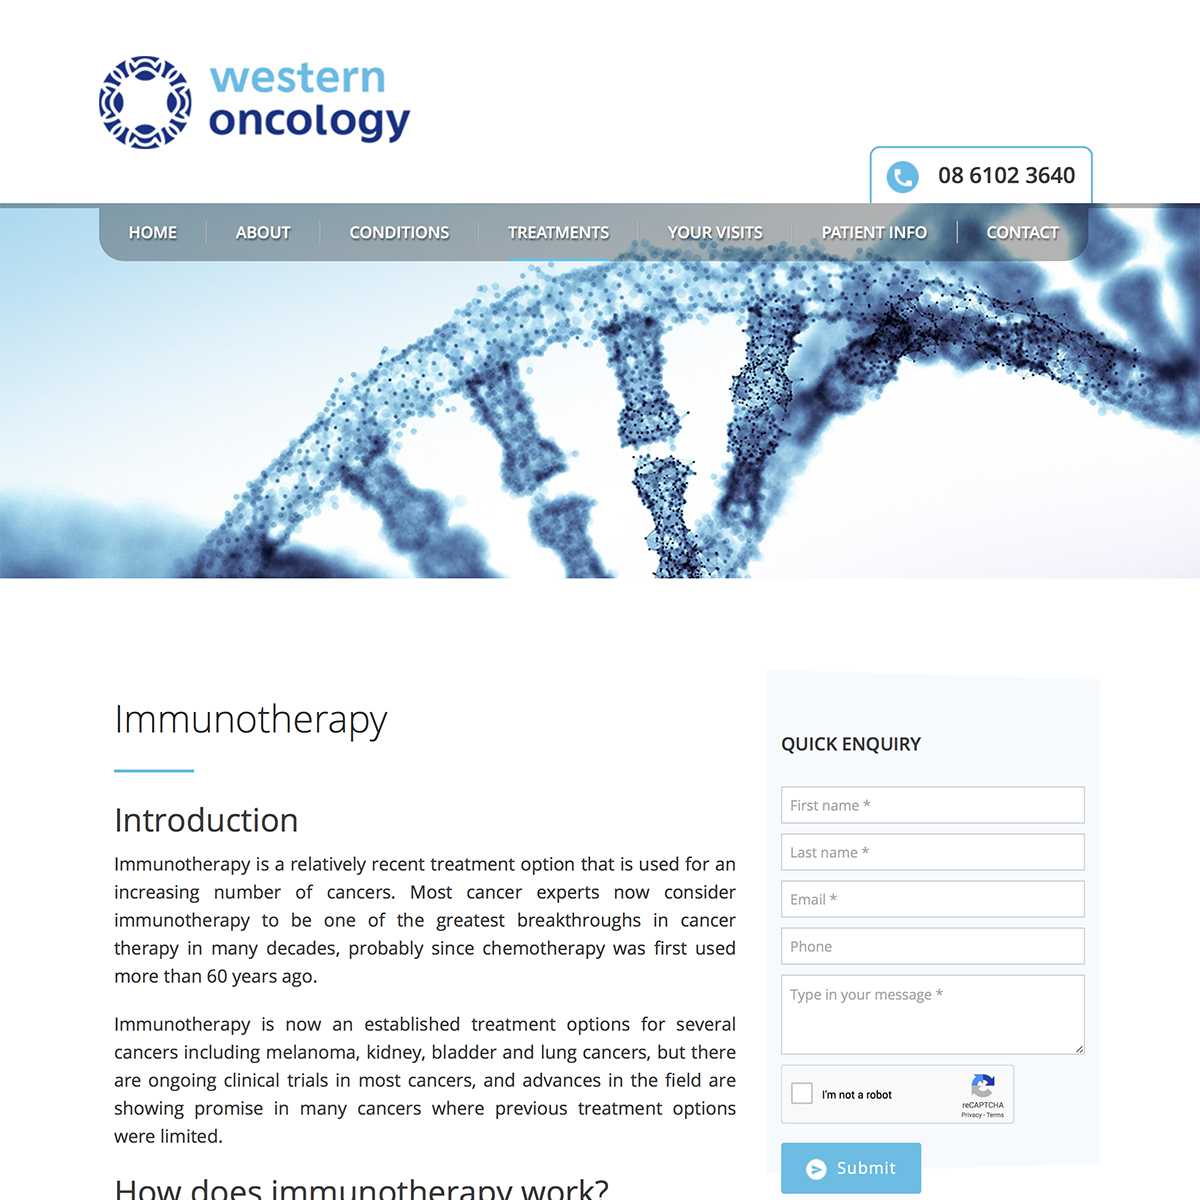 Western Oncology - Immunotherapy